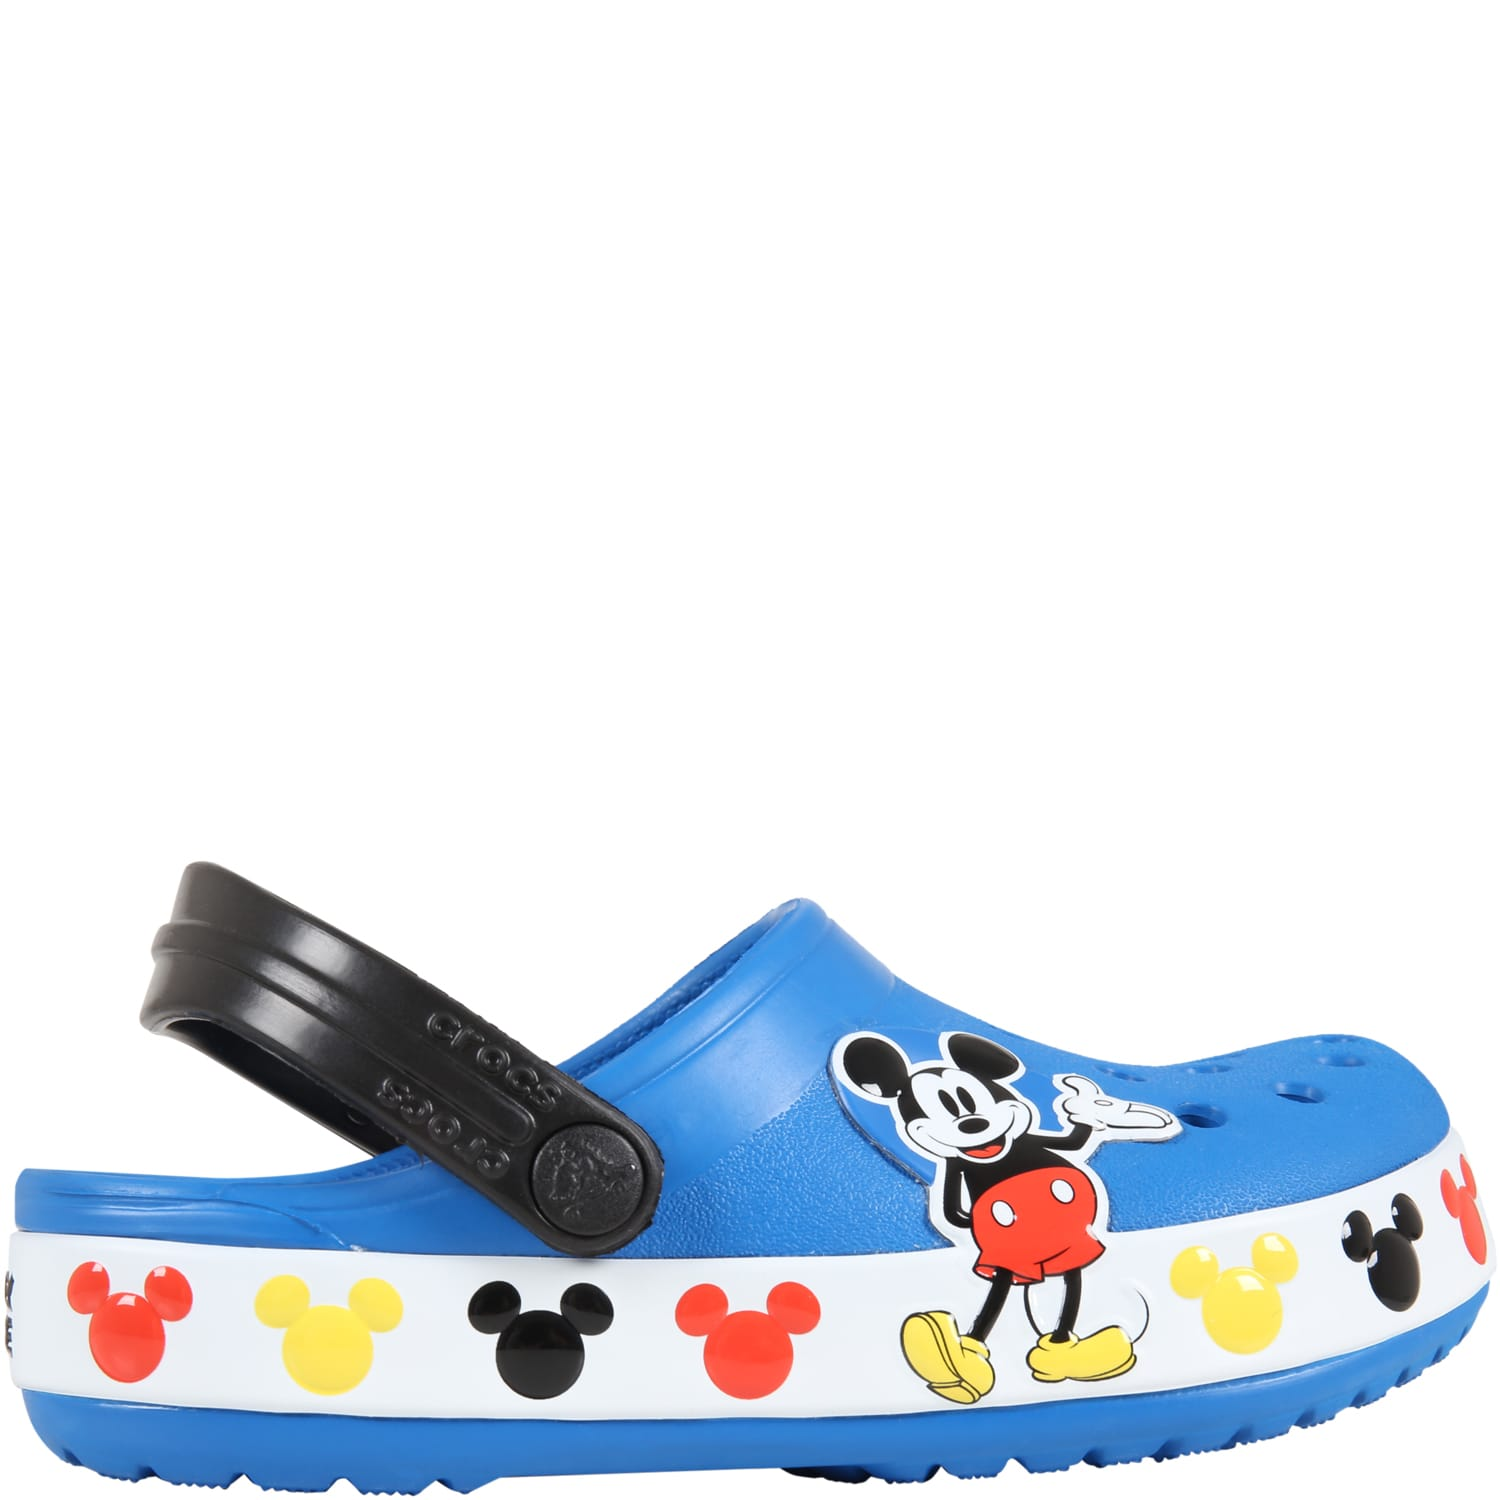 Blue Sabot For Kids With Mickey Mouse